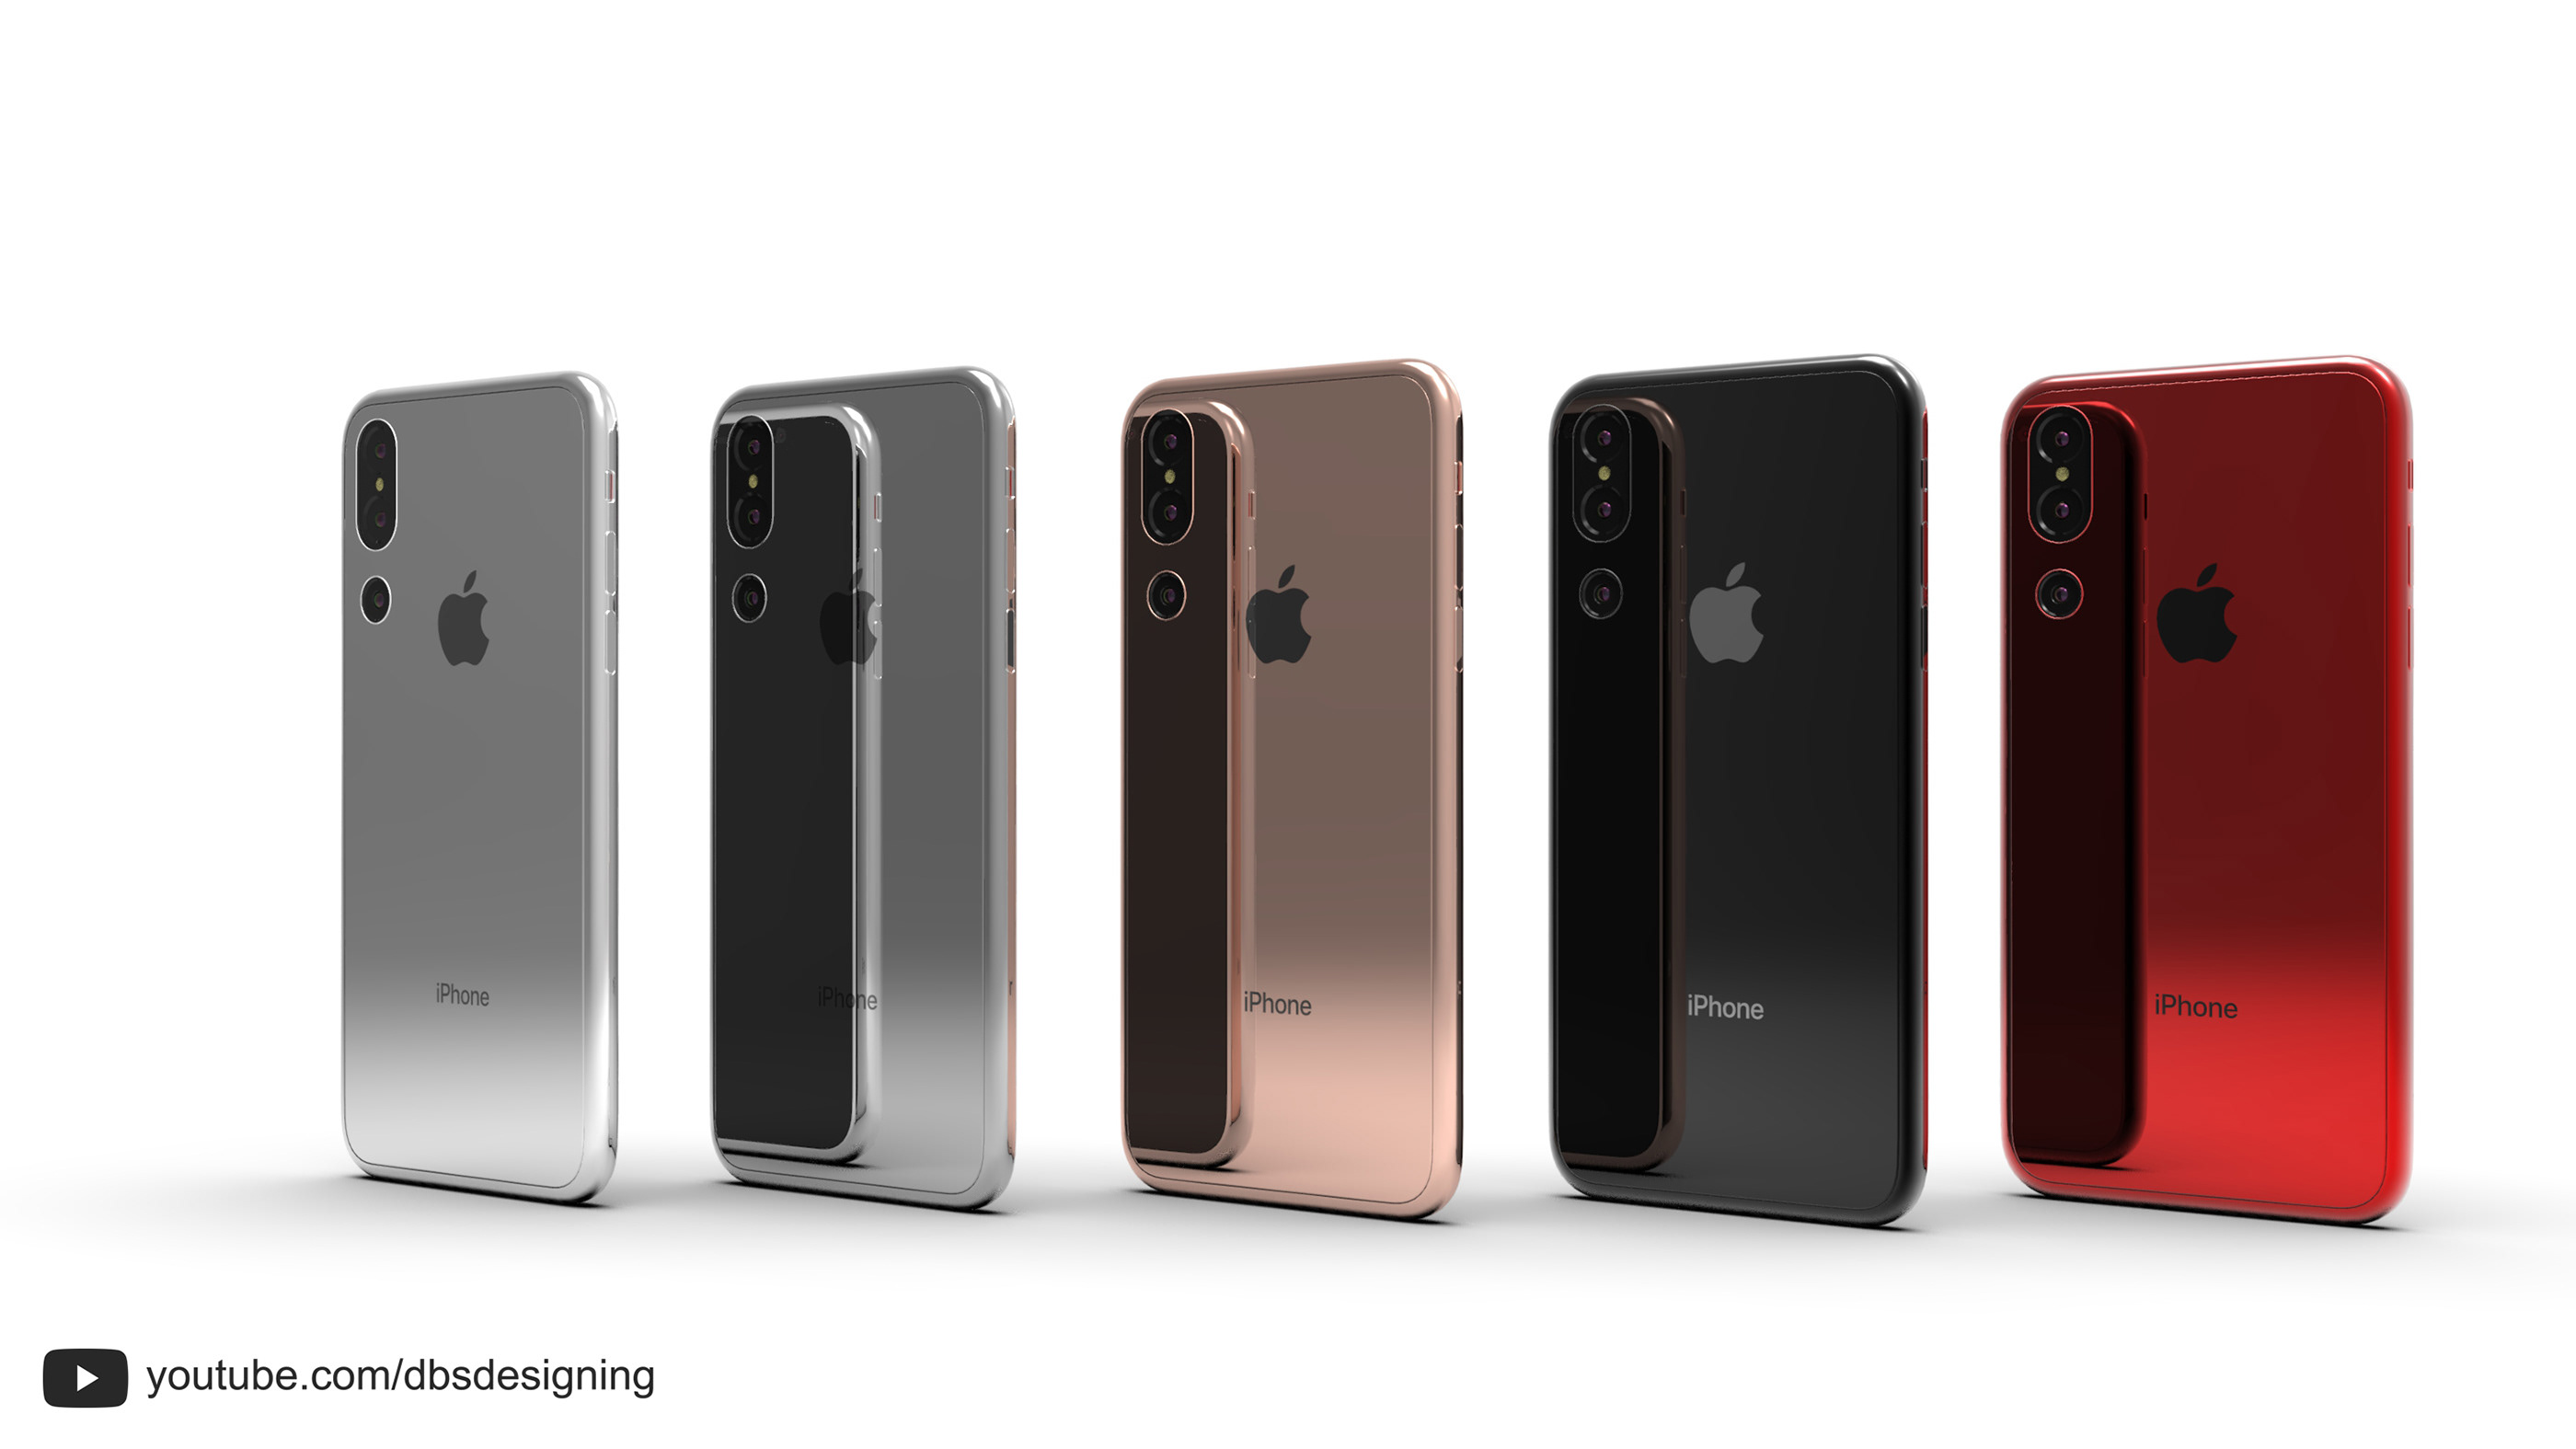 new iphone colors behold the iphone x plus of your dreams bgr 12692